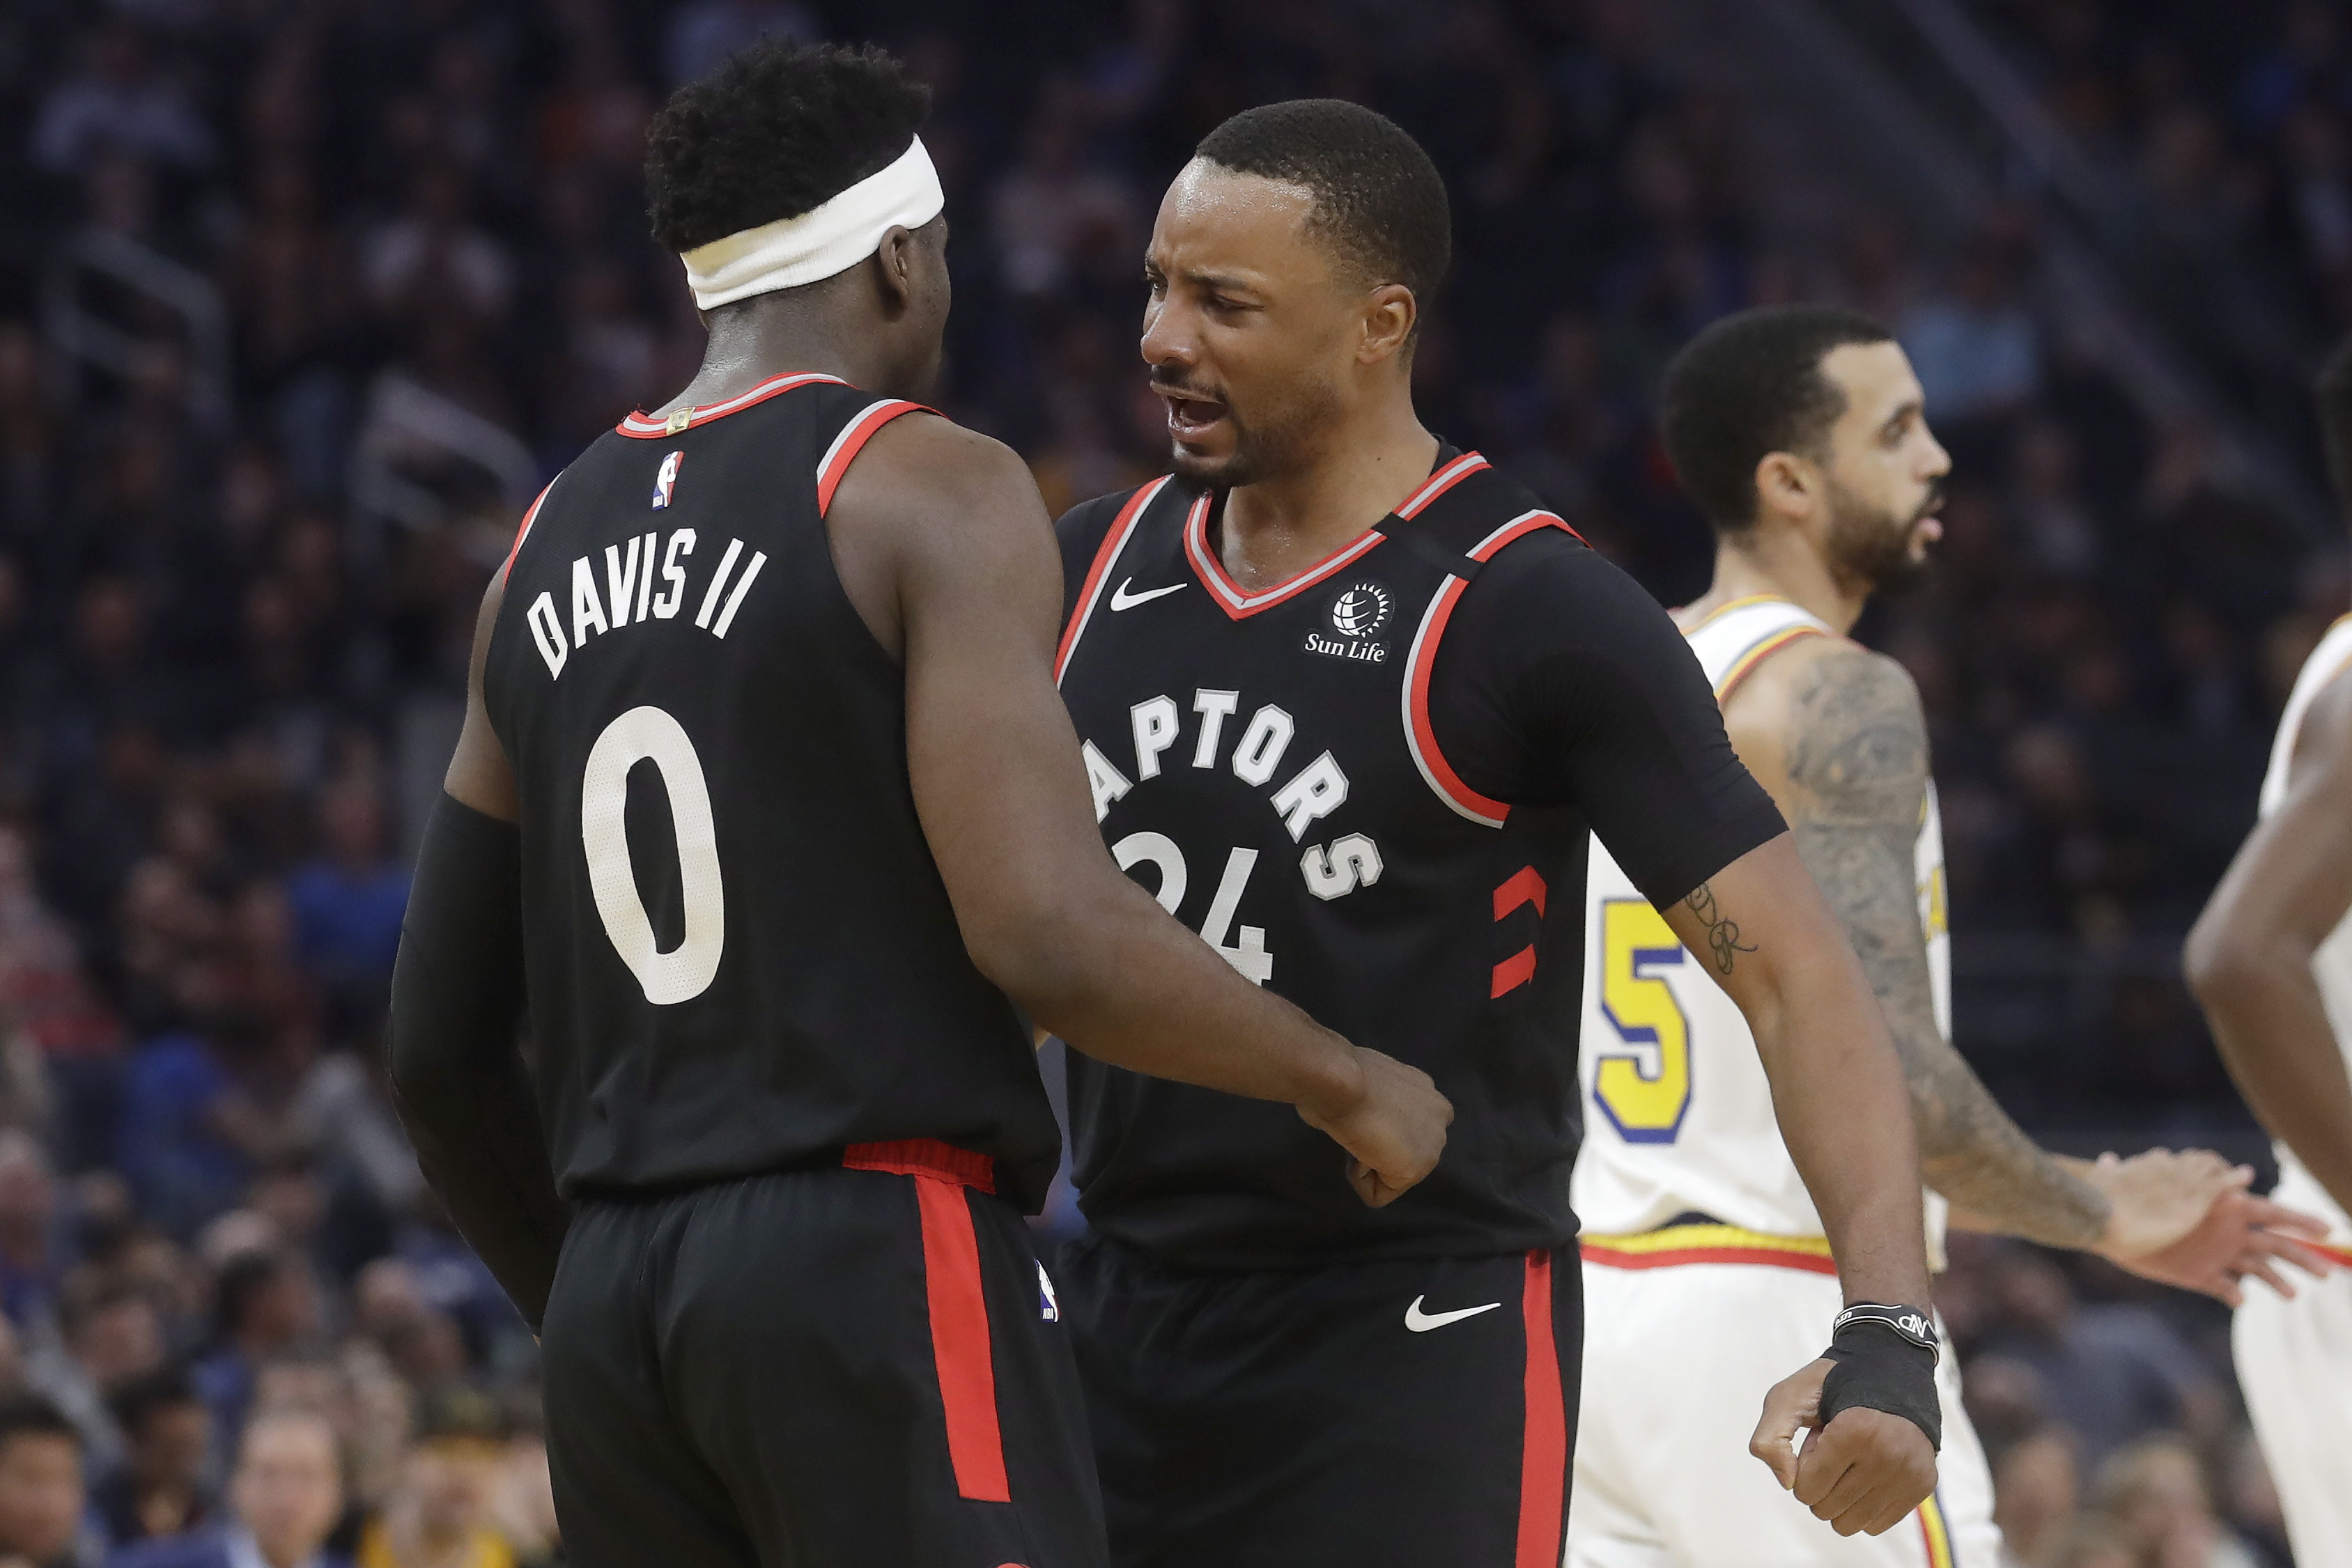 Raptors officially clinch playoff berth with victory over Warriors